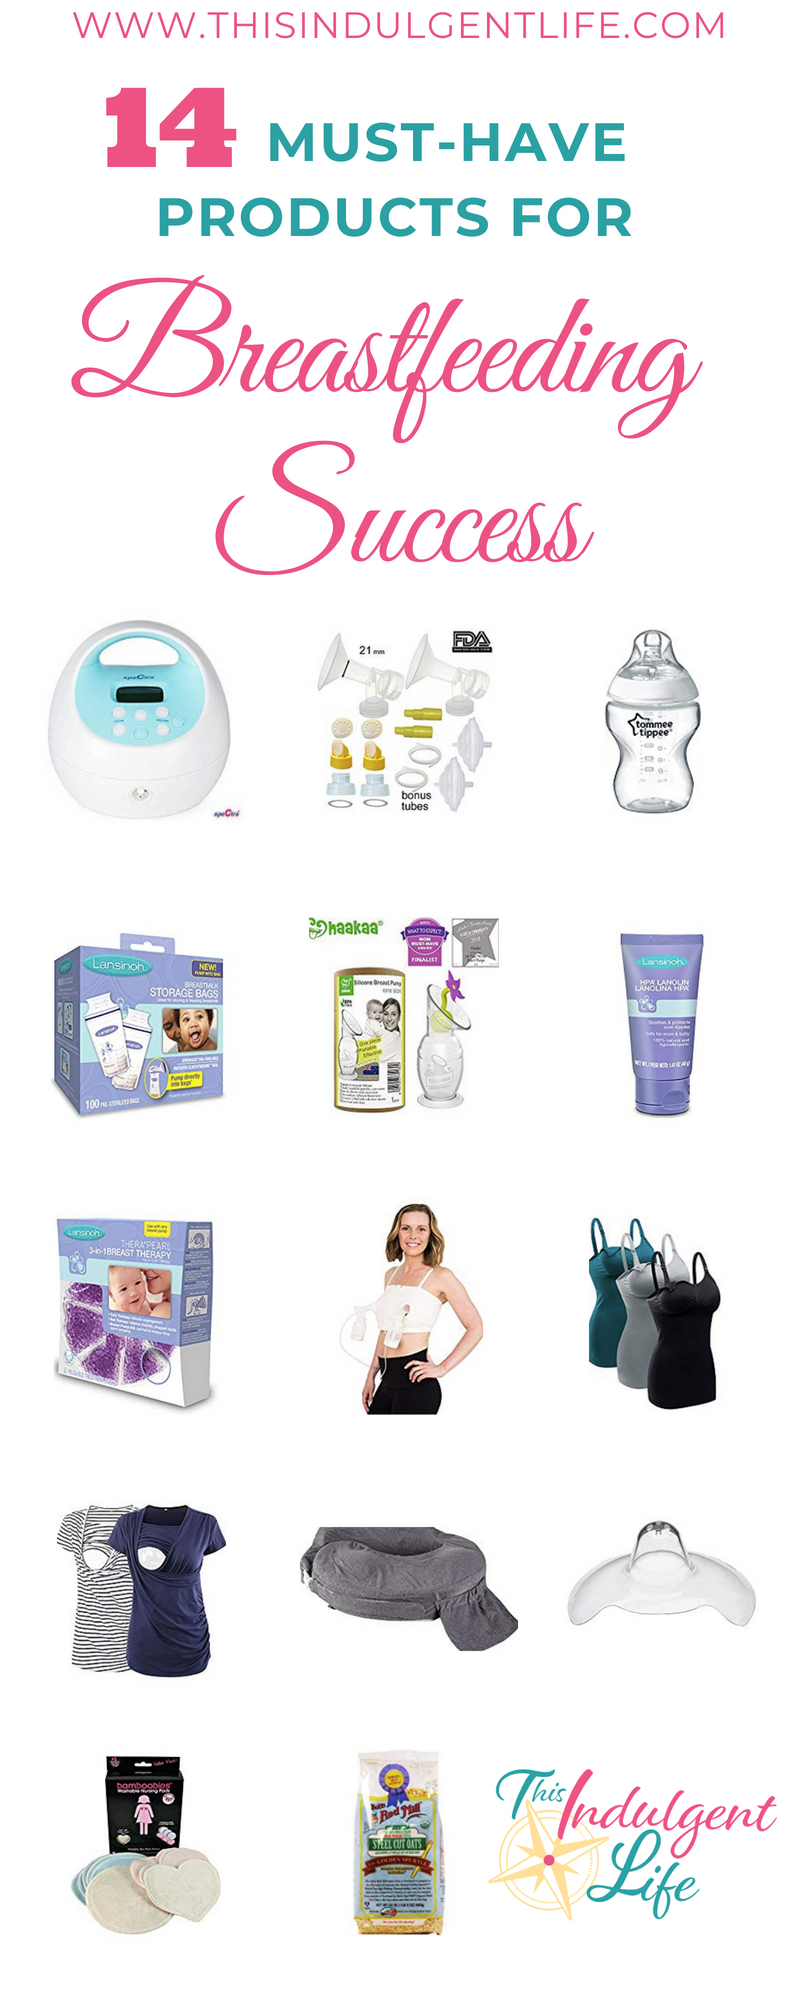 14 must have products for breastfeeding success | This Indulgent Life | 14 must-have products from nipple cream to lactation cookies, that helped make breastfeeding successful. #breastfeeding #breastfeedingessentials #breastfeedingsnacks #breastpump #nursingbra #nursingshirts #pumpingessentials